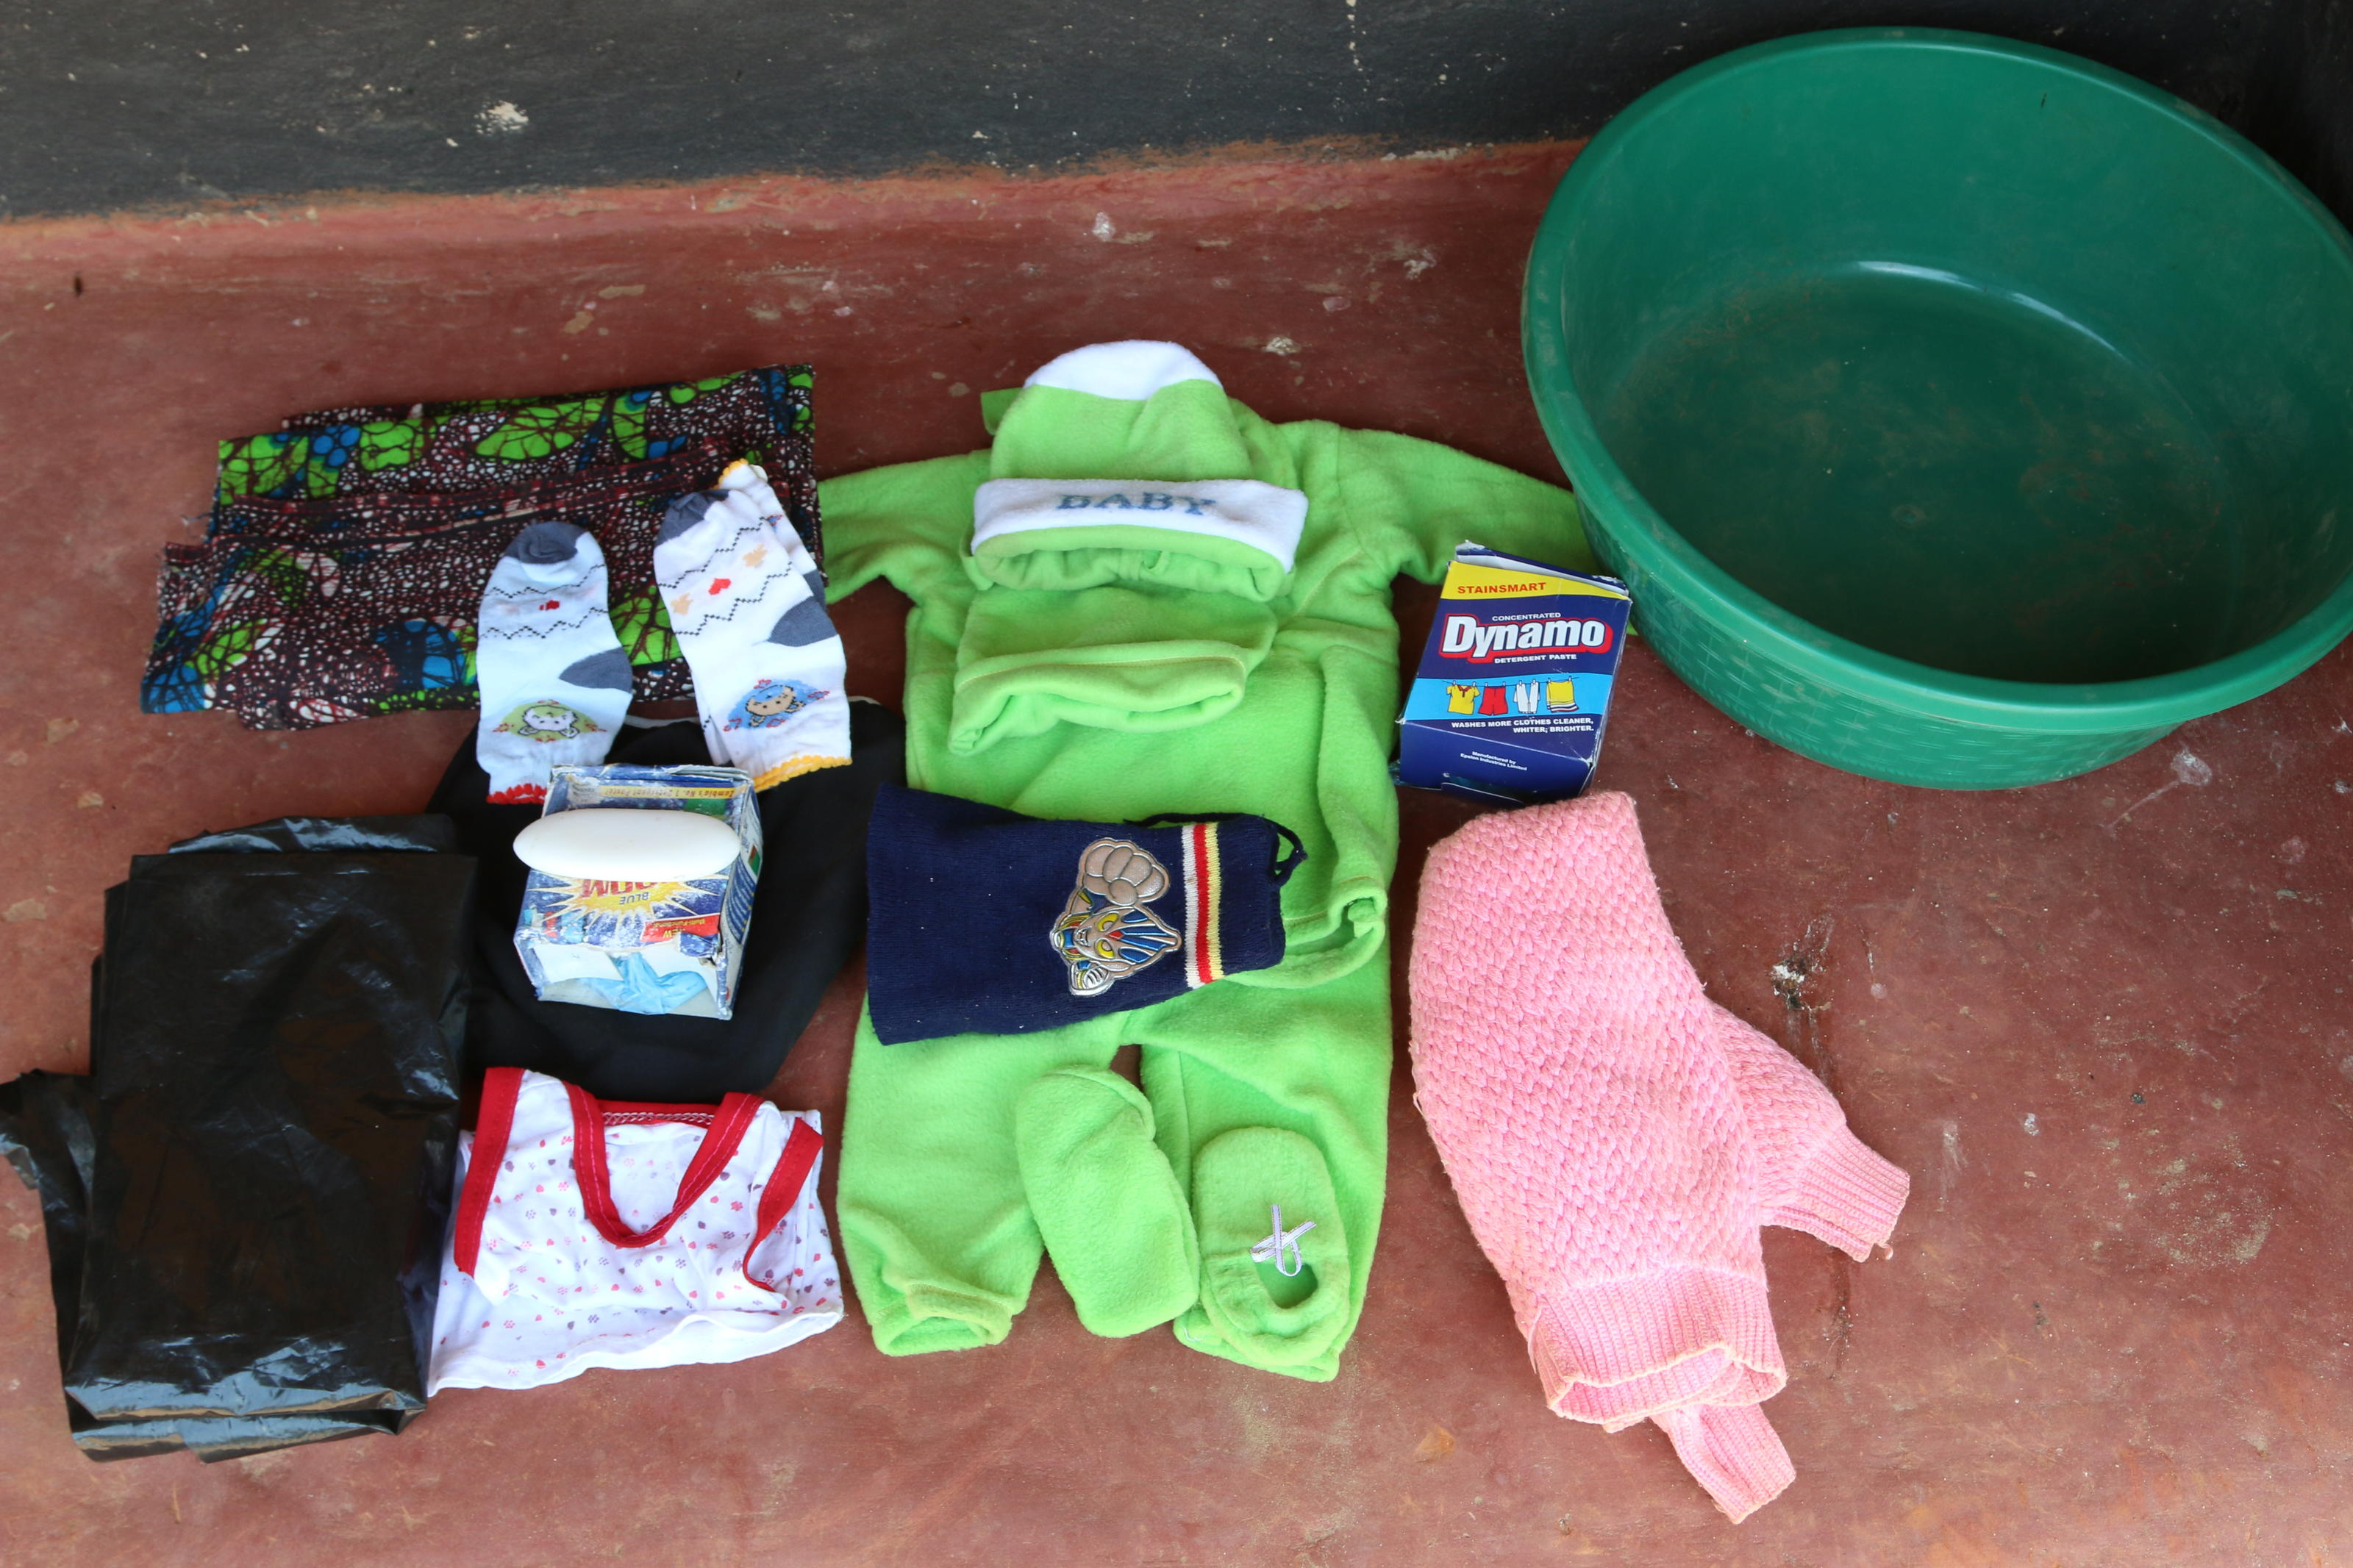 Hazel Shandumba's maternity bag contents: baby blanket, cotton wool, sarong, baby suit, napkins, dish and polythene roll. Hamangaga, Zambia, 2015.